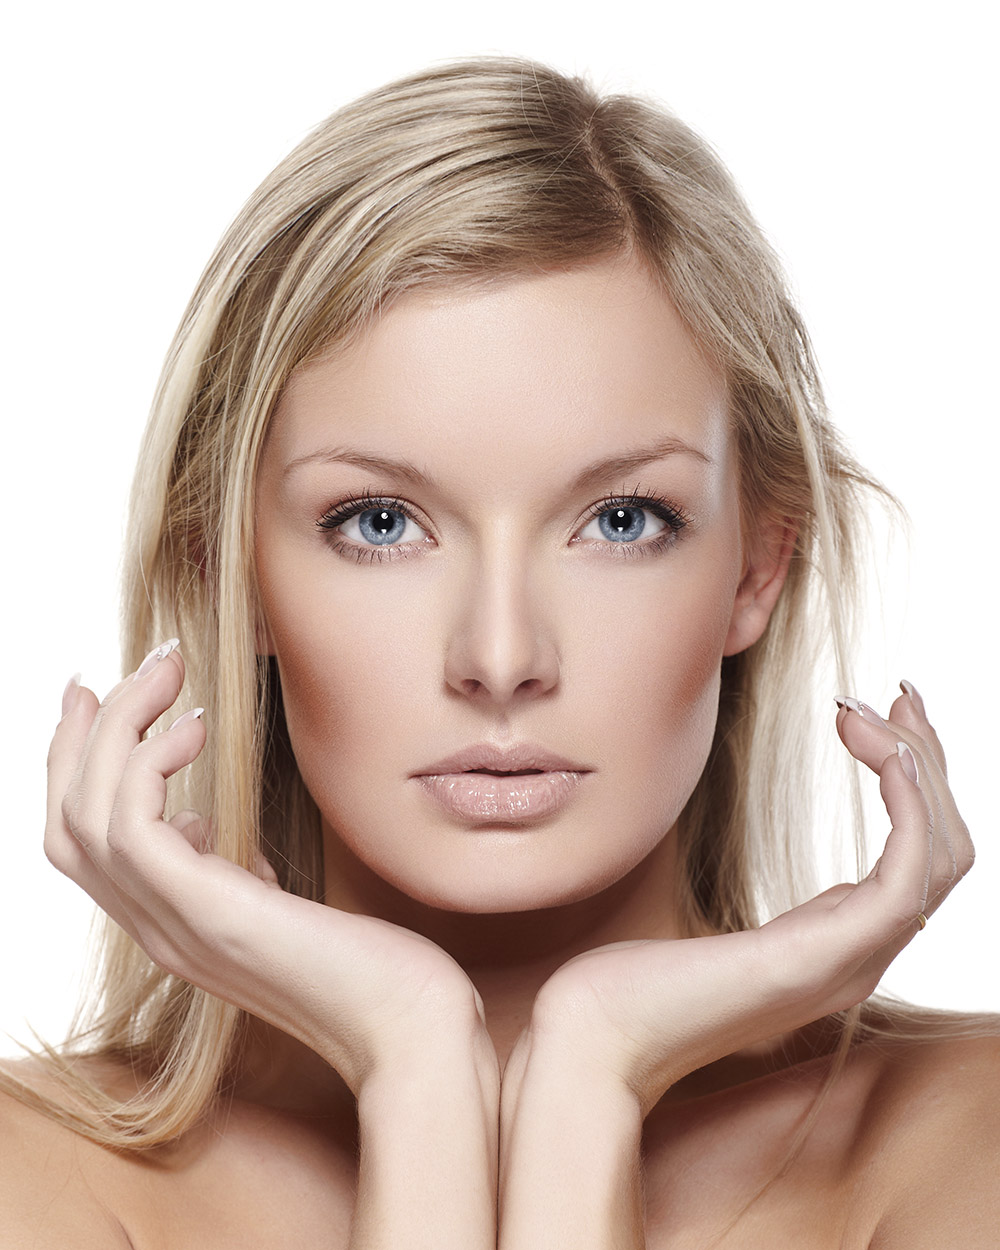 Radiofrequency facial treatment